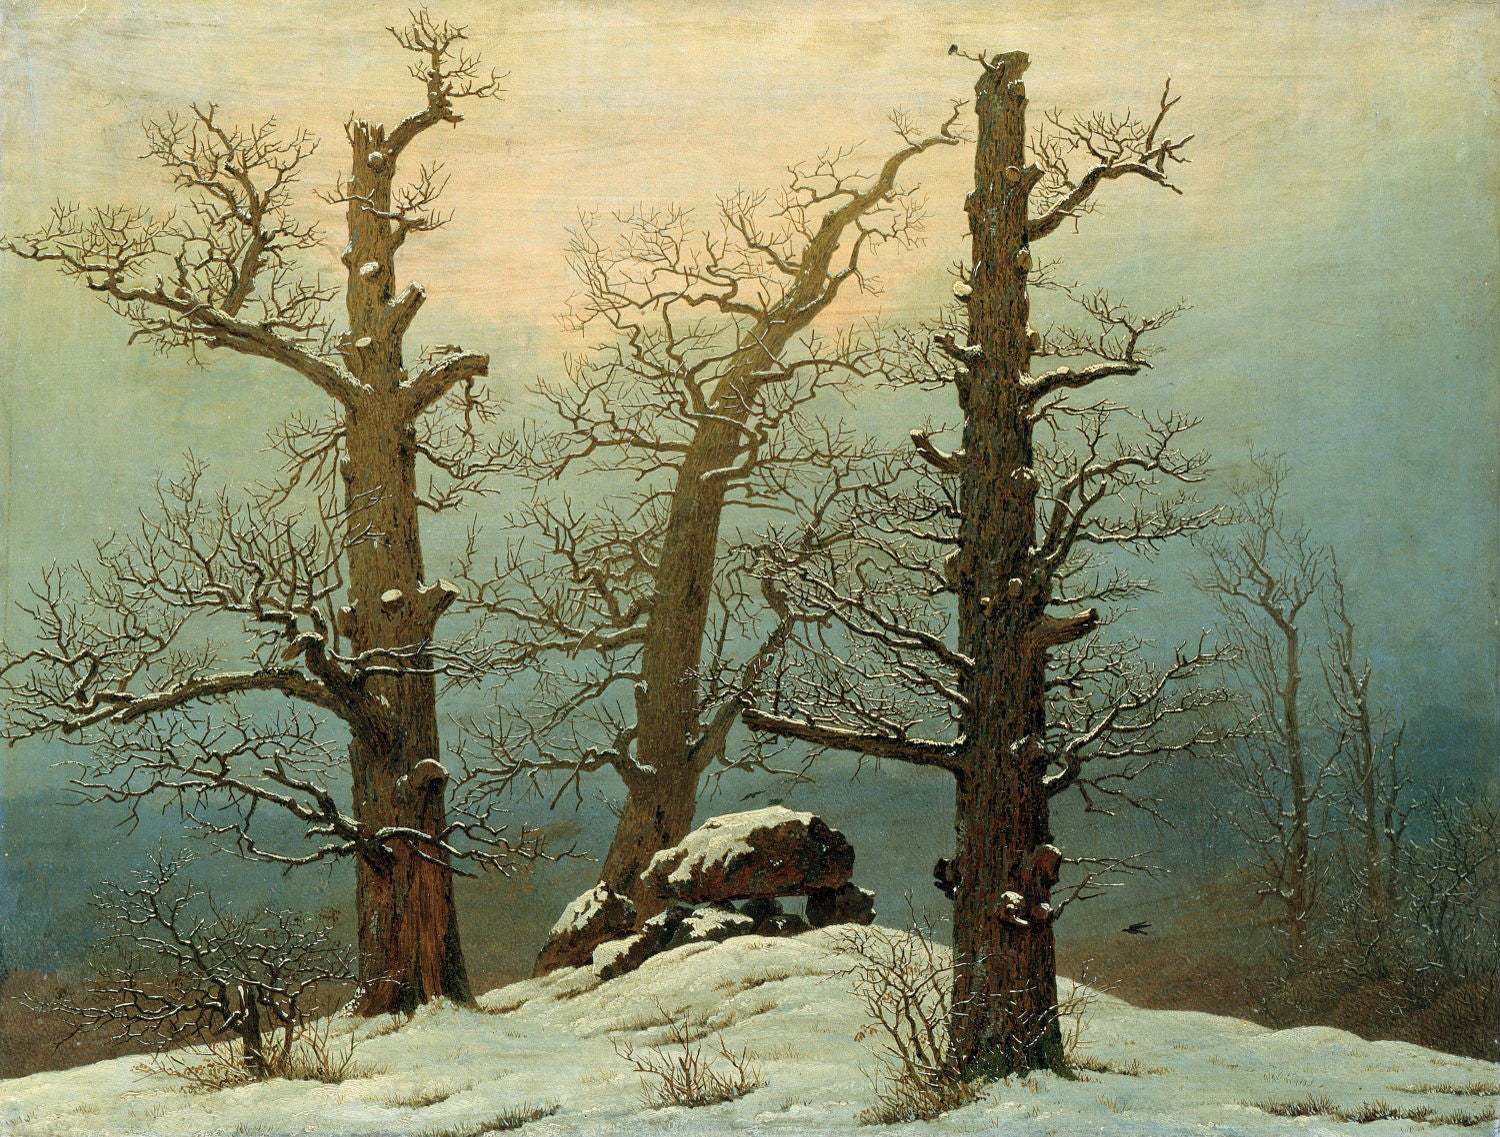 Caspar David Friedrich Paintings | Buy Posters, Frames, Canvas, Digital Art & Large Size Prints